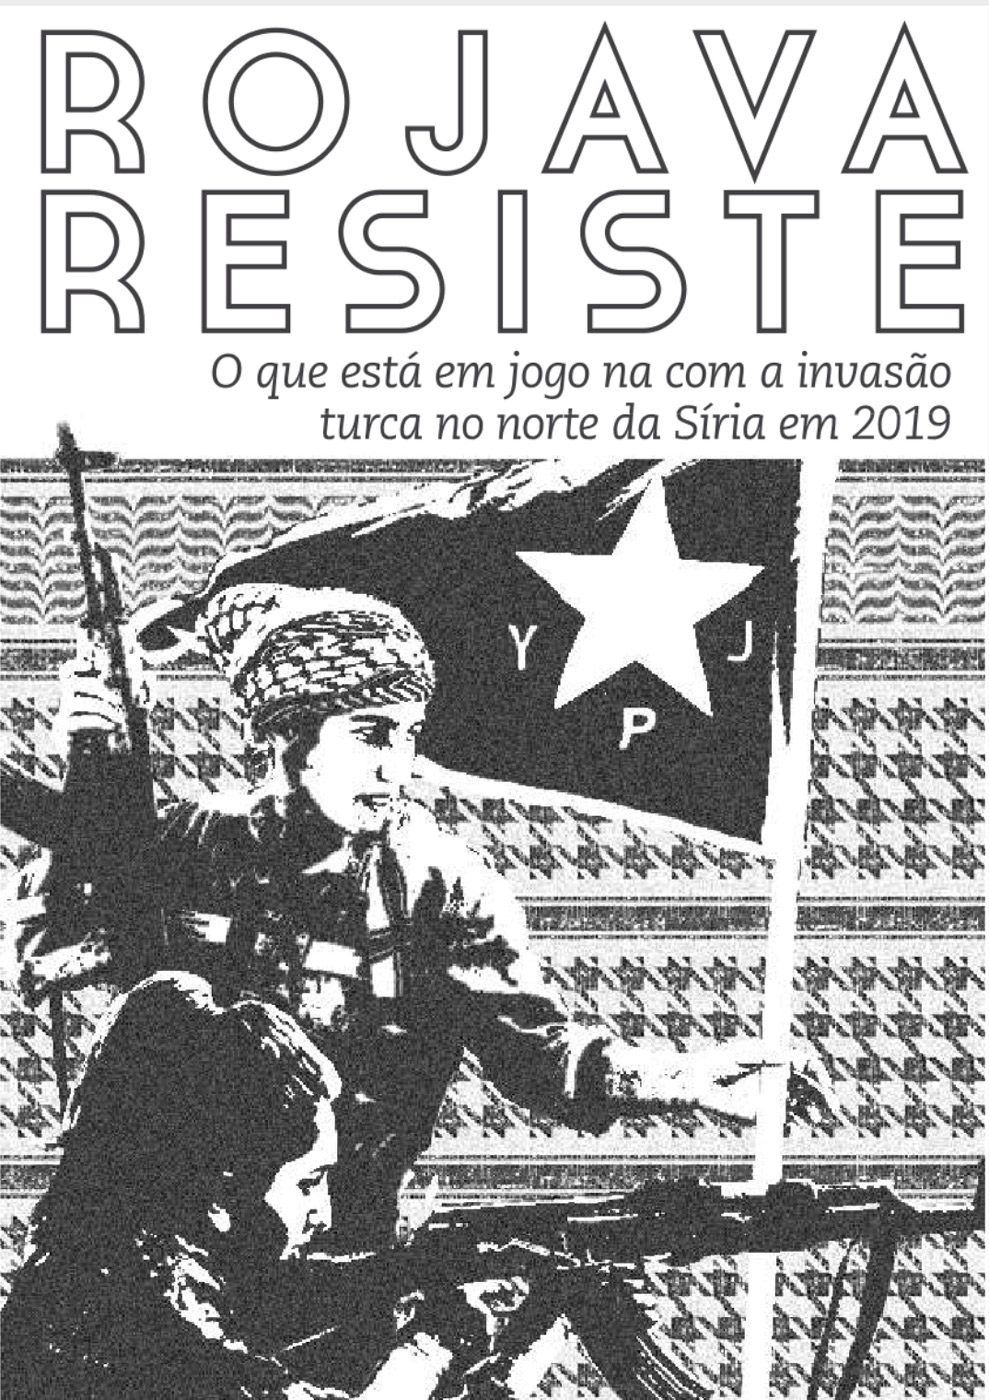 Photo of 'Rojava resiste' front cover